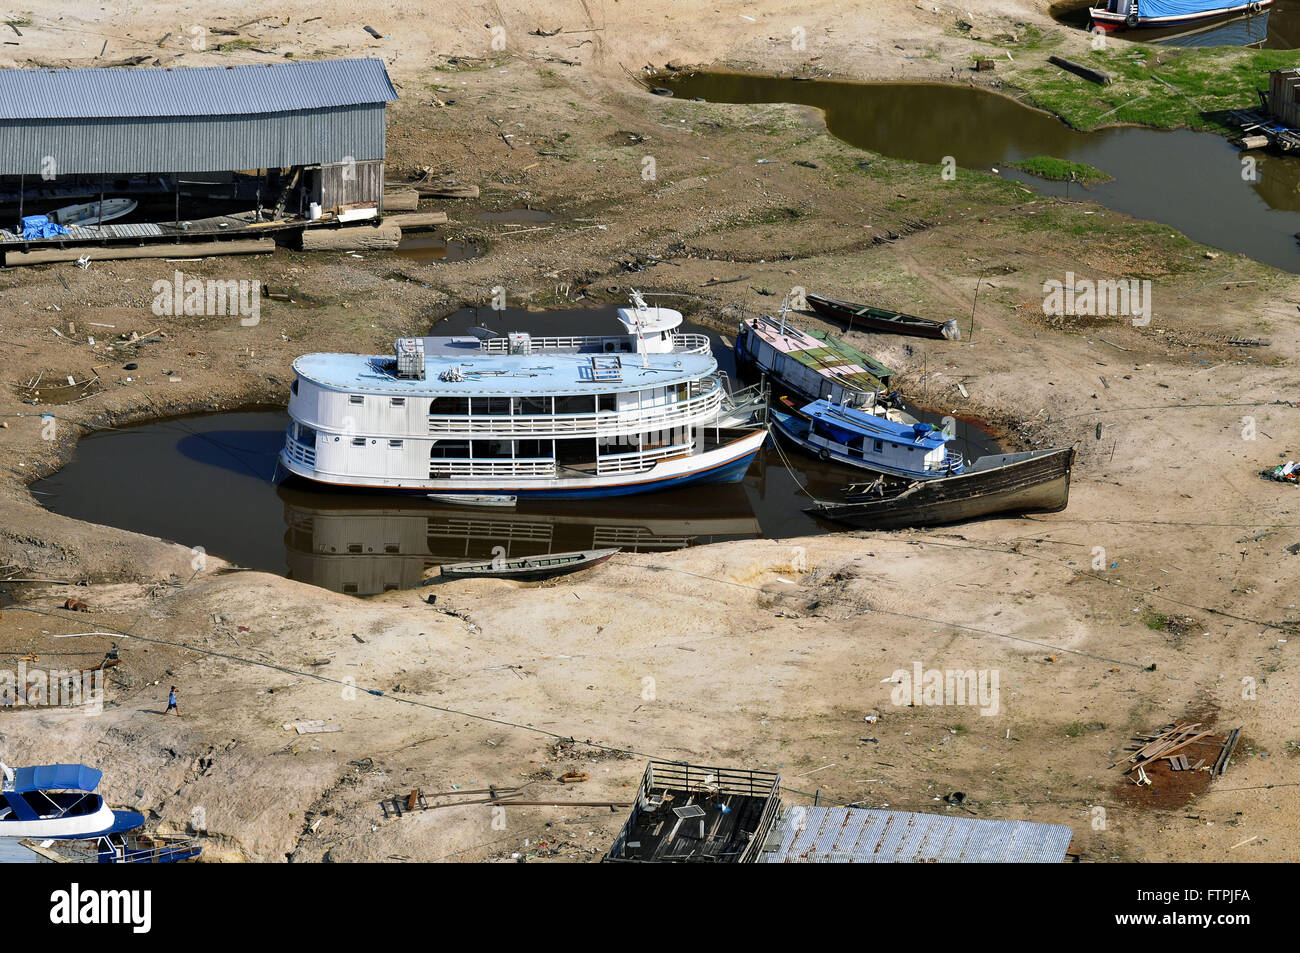 Drought in the Rio Negro - Beached Boats in the marina David - Stock Image